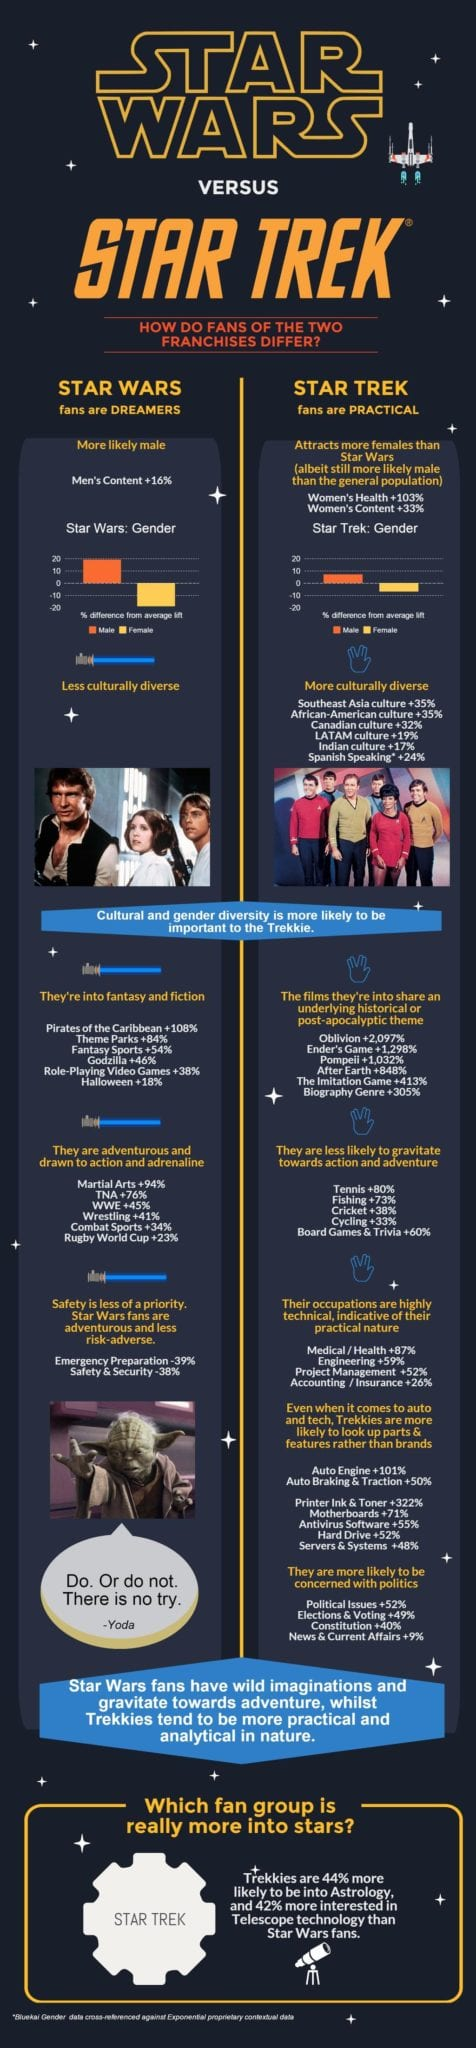 Star Wars versus Star Trek, whats better star wars or star trek, whats the difference between star wars and star trek